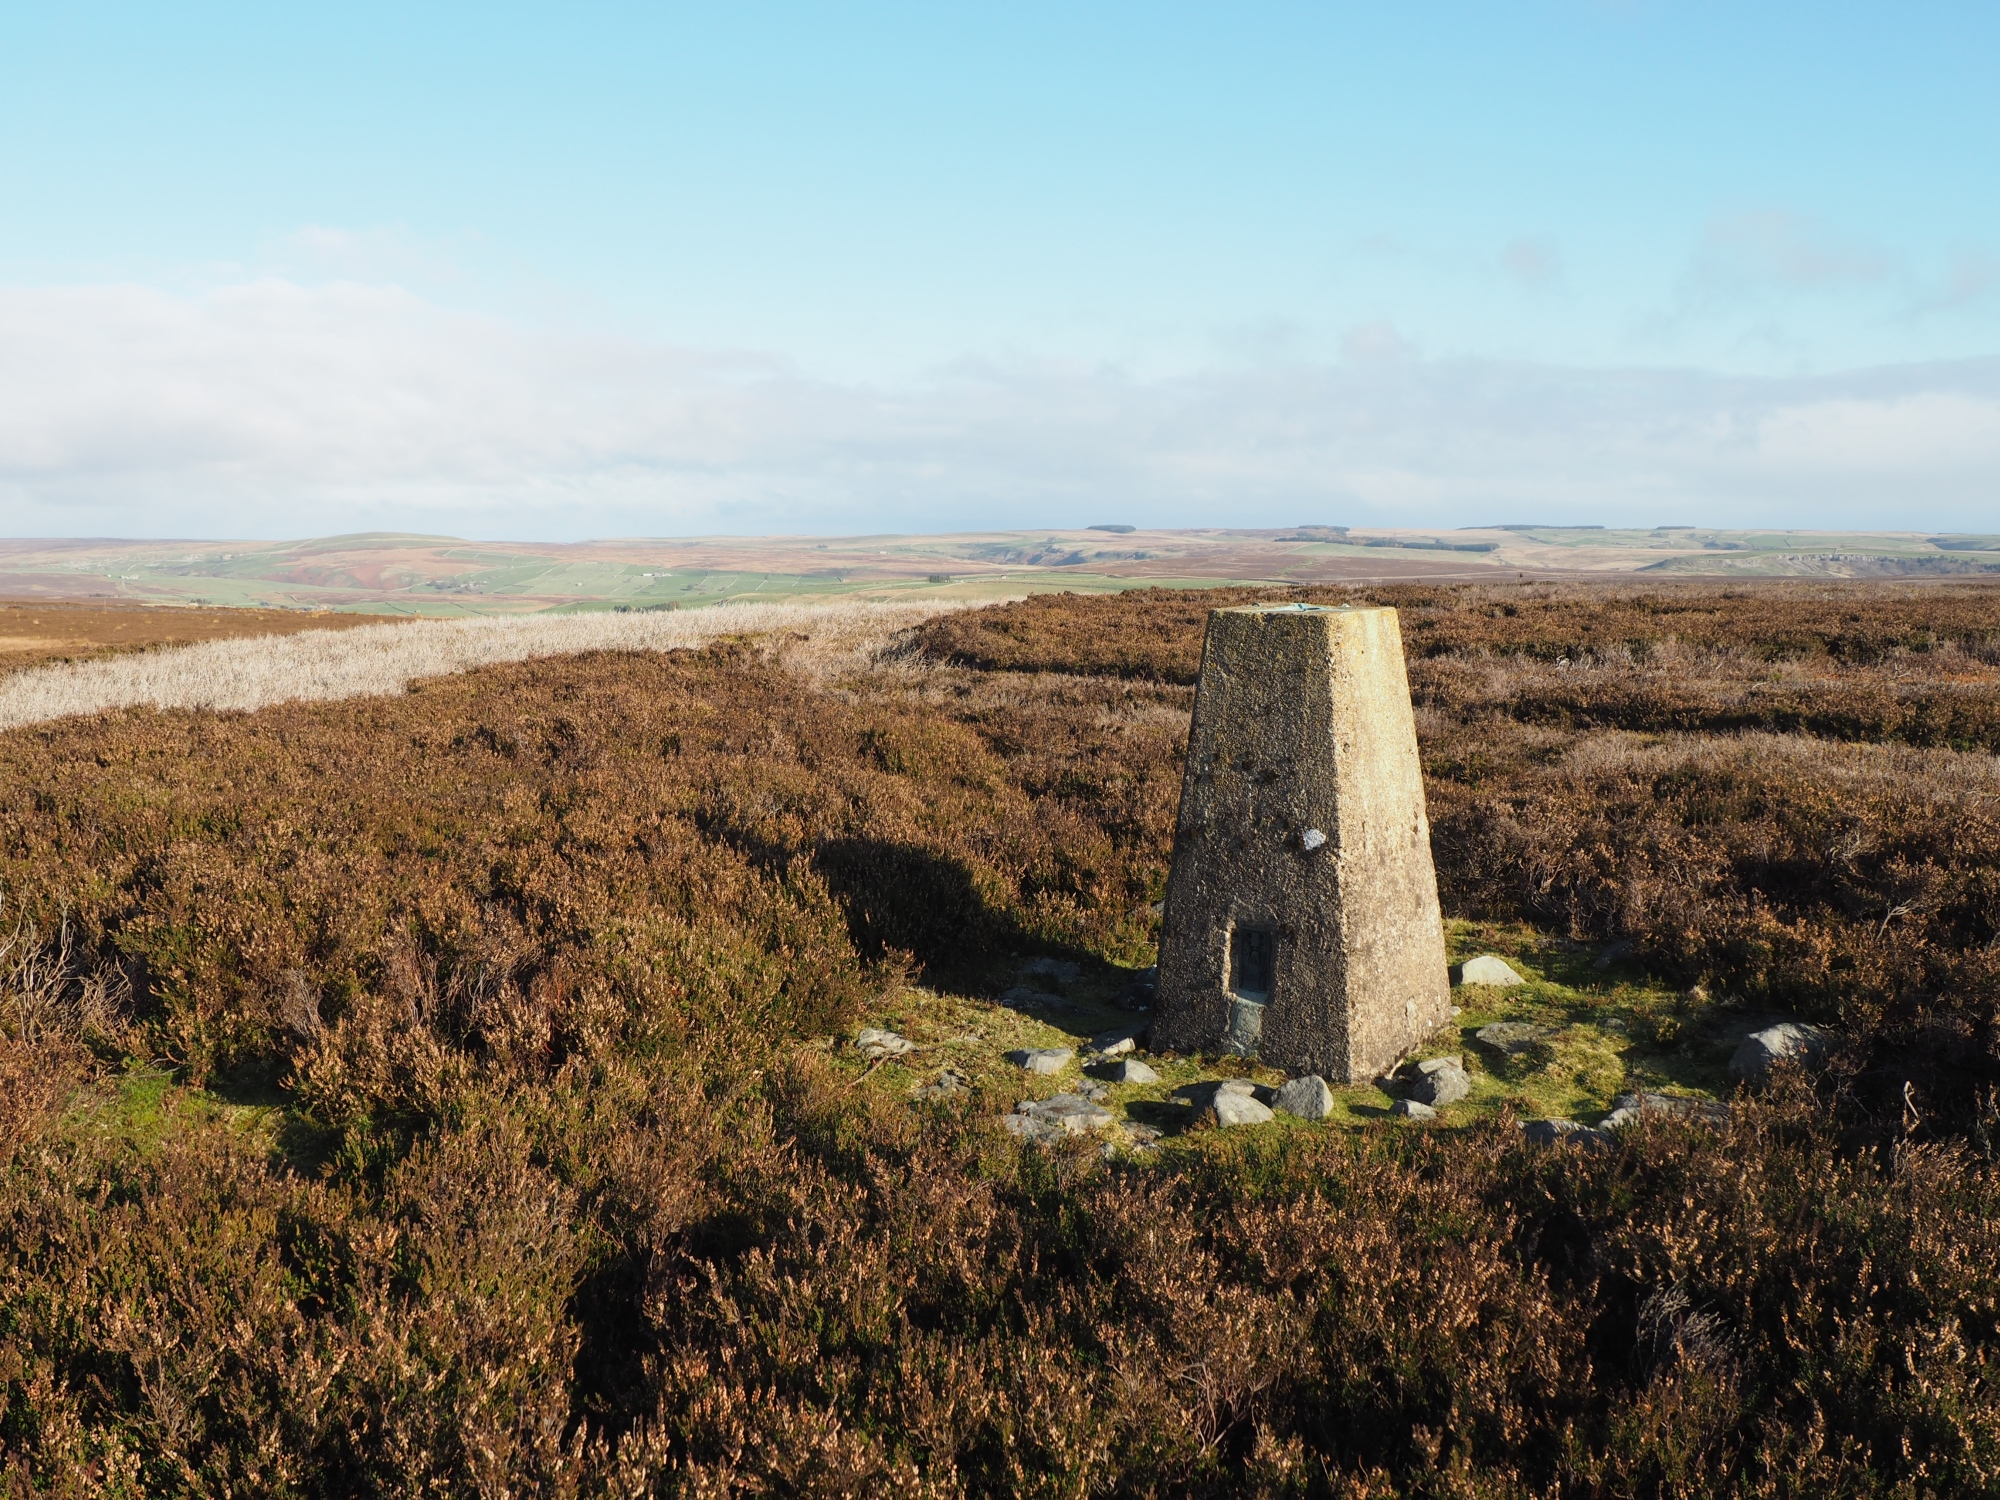 Copperthwaite Moor Trig Point